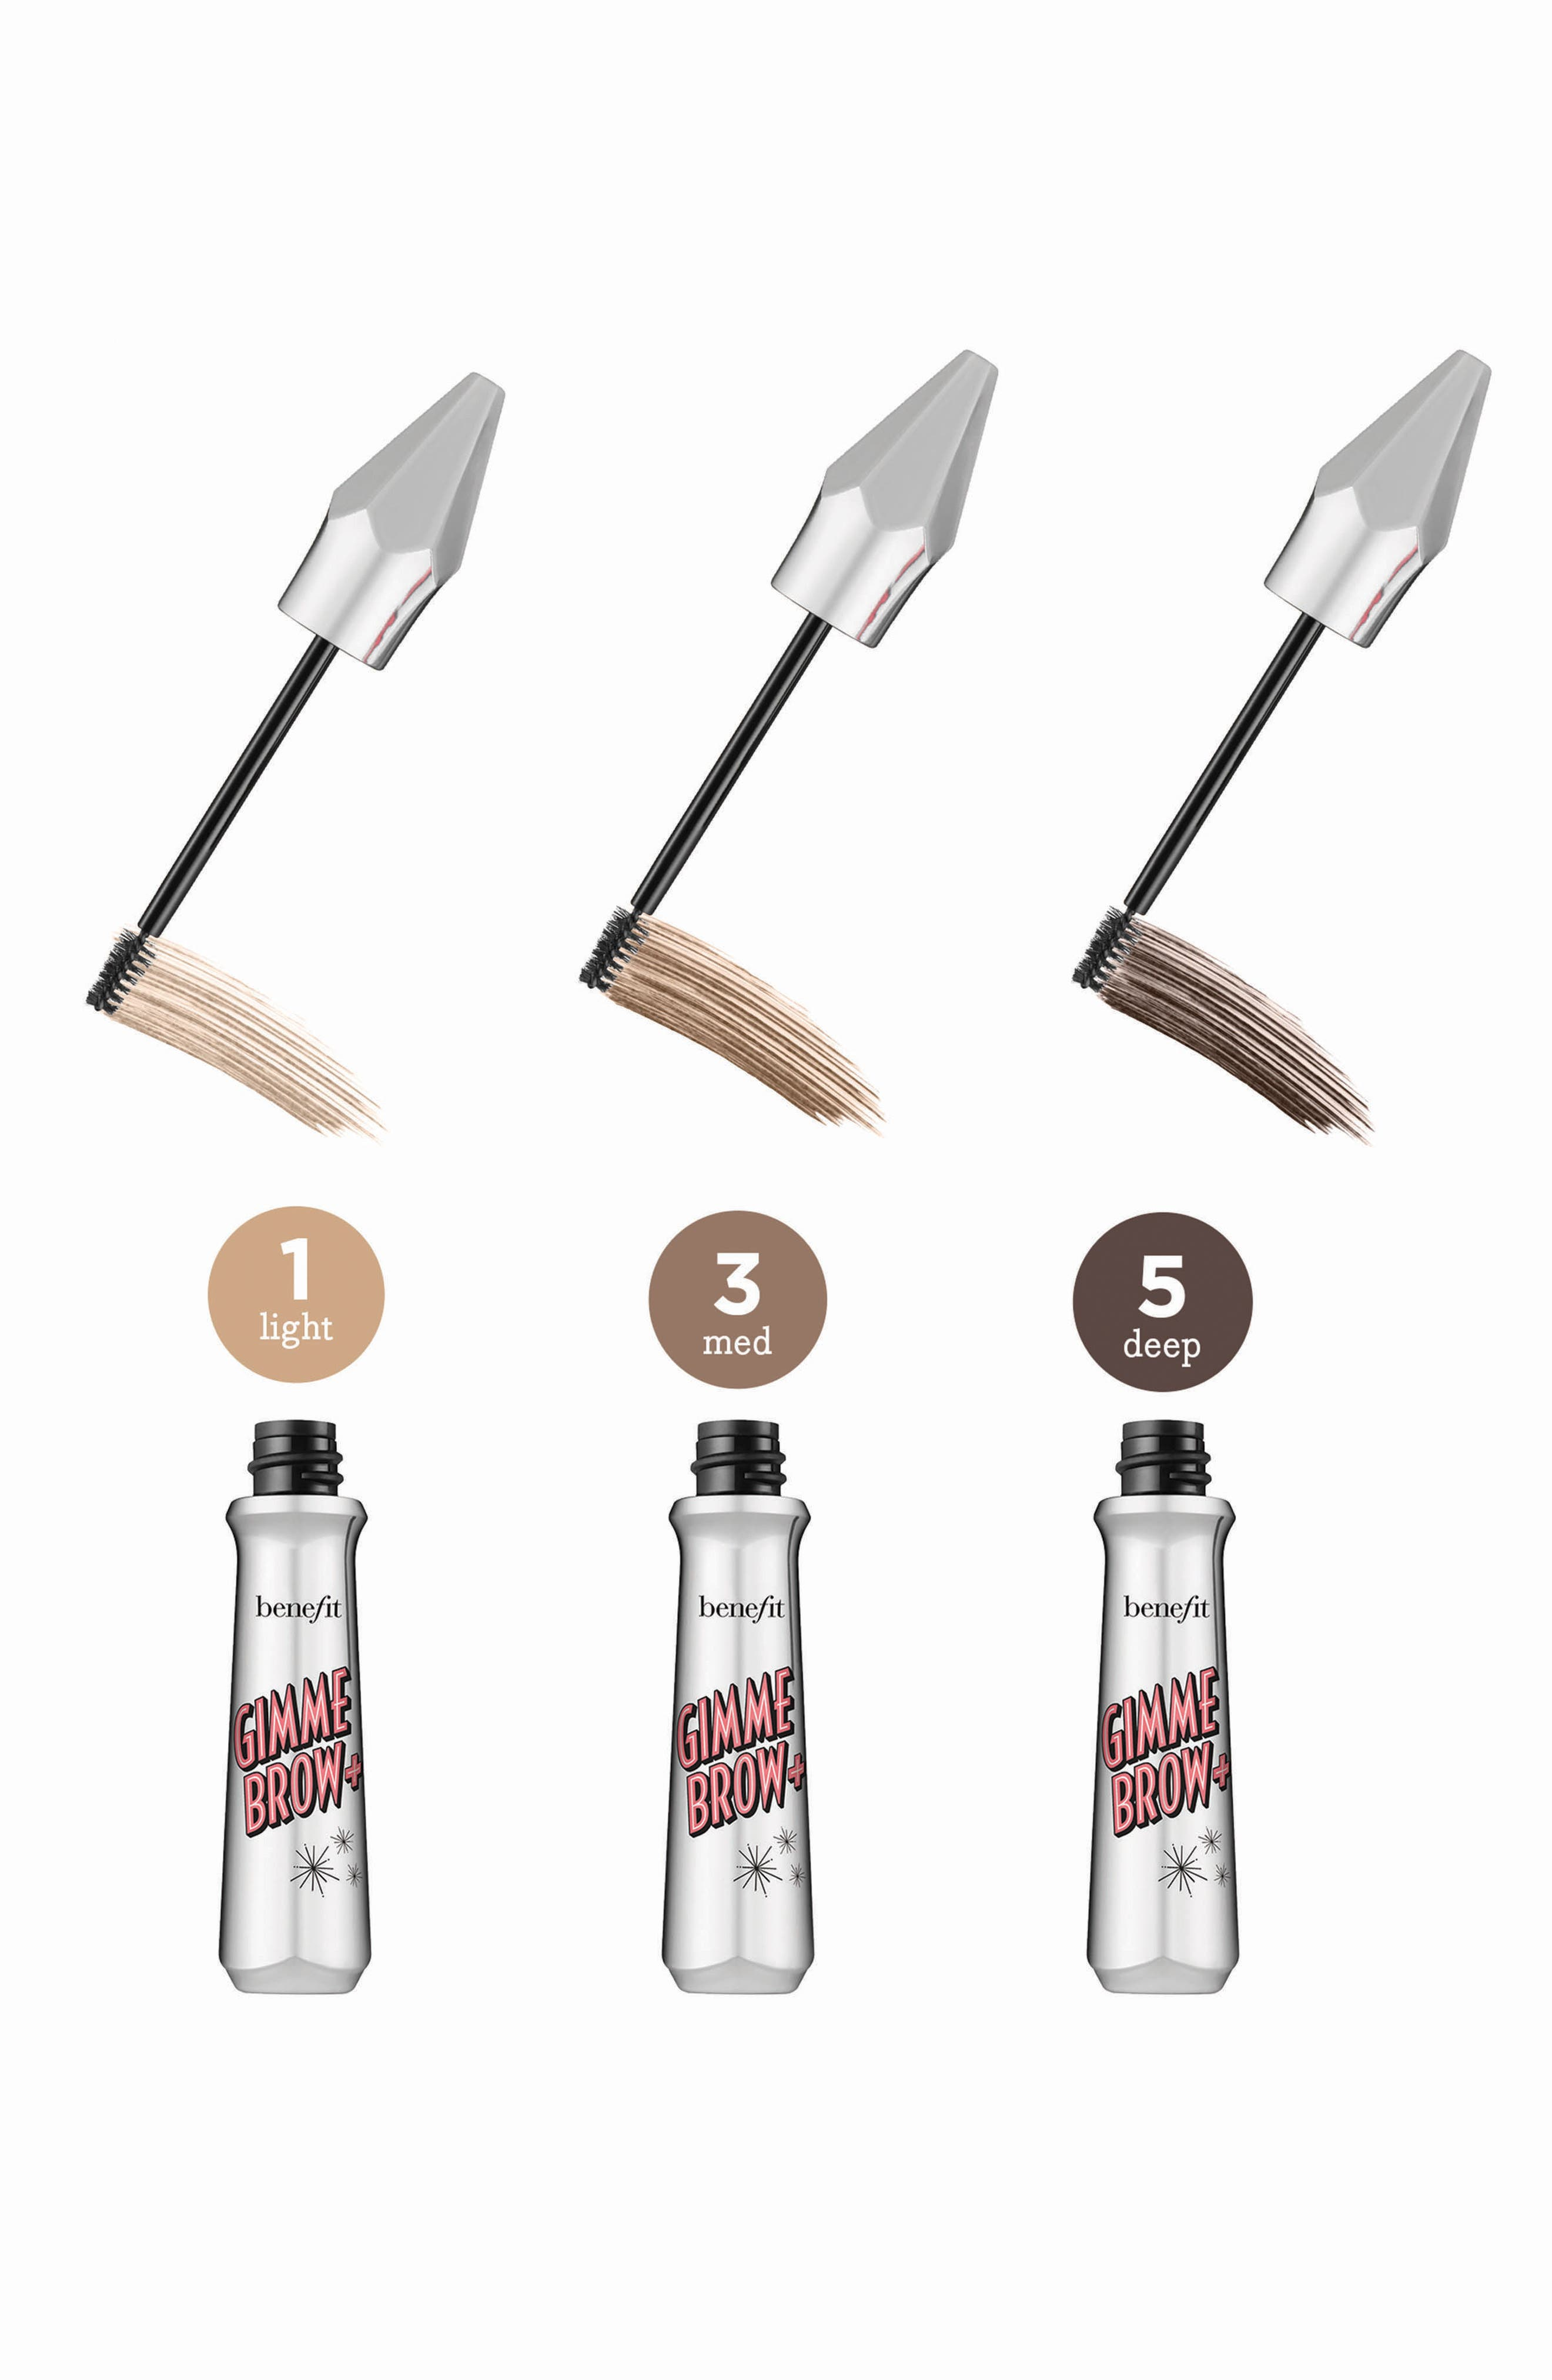 Benefit Gimme Brow+ Volumizing Eyebrow Gel,                             Alternate thumbnail 12, color,                             01 LIGHT/COOL LIGHT BLONDE